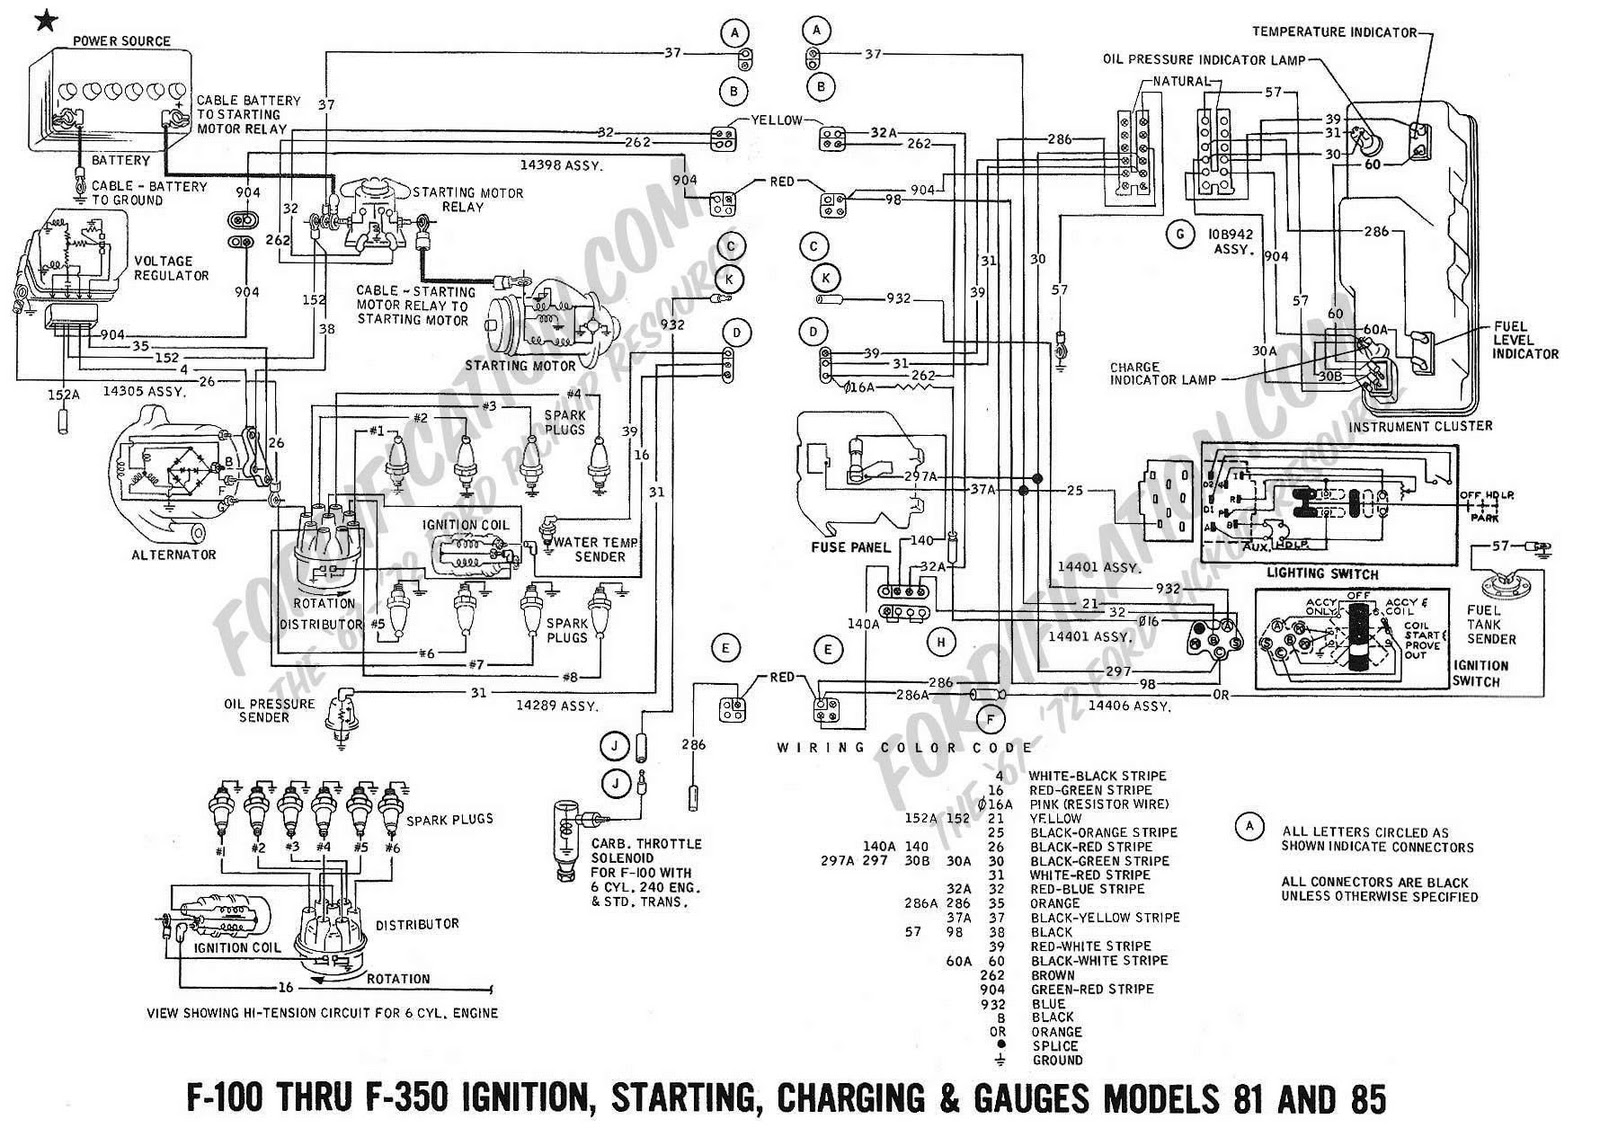 Wiring Diagram Moreover Ford Mustang Wiring Diagram Moreover Ford